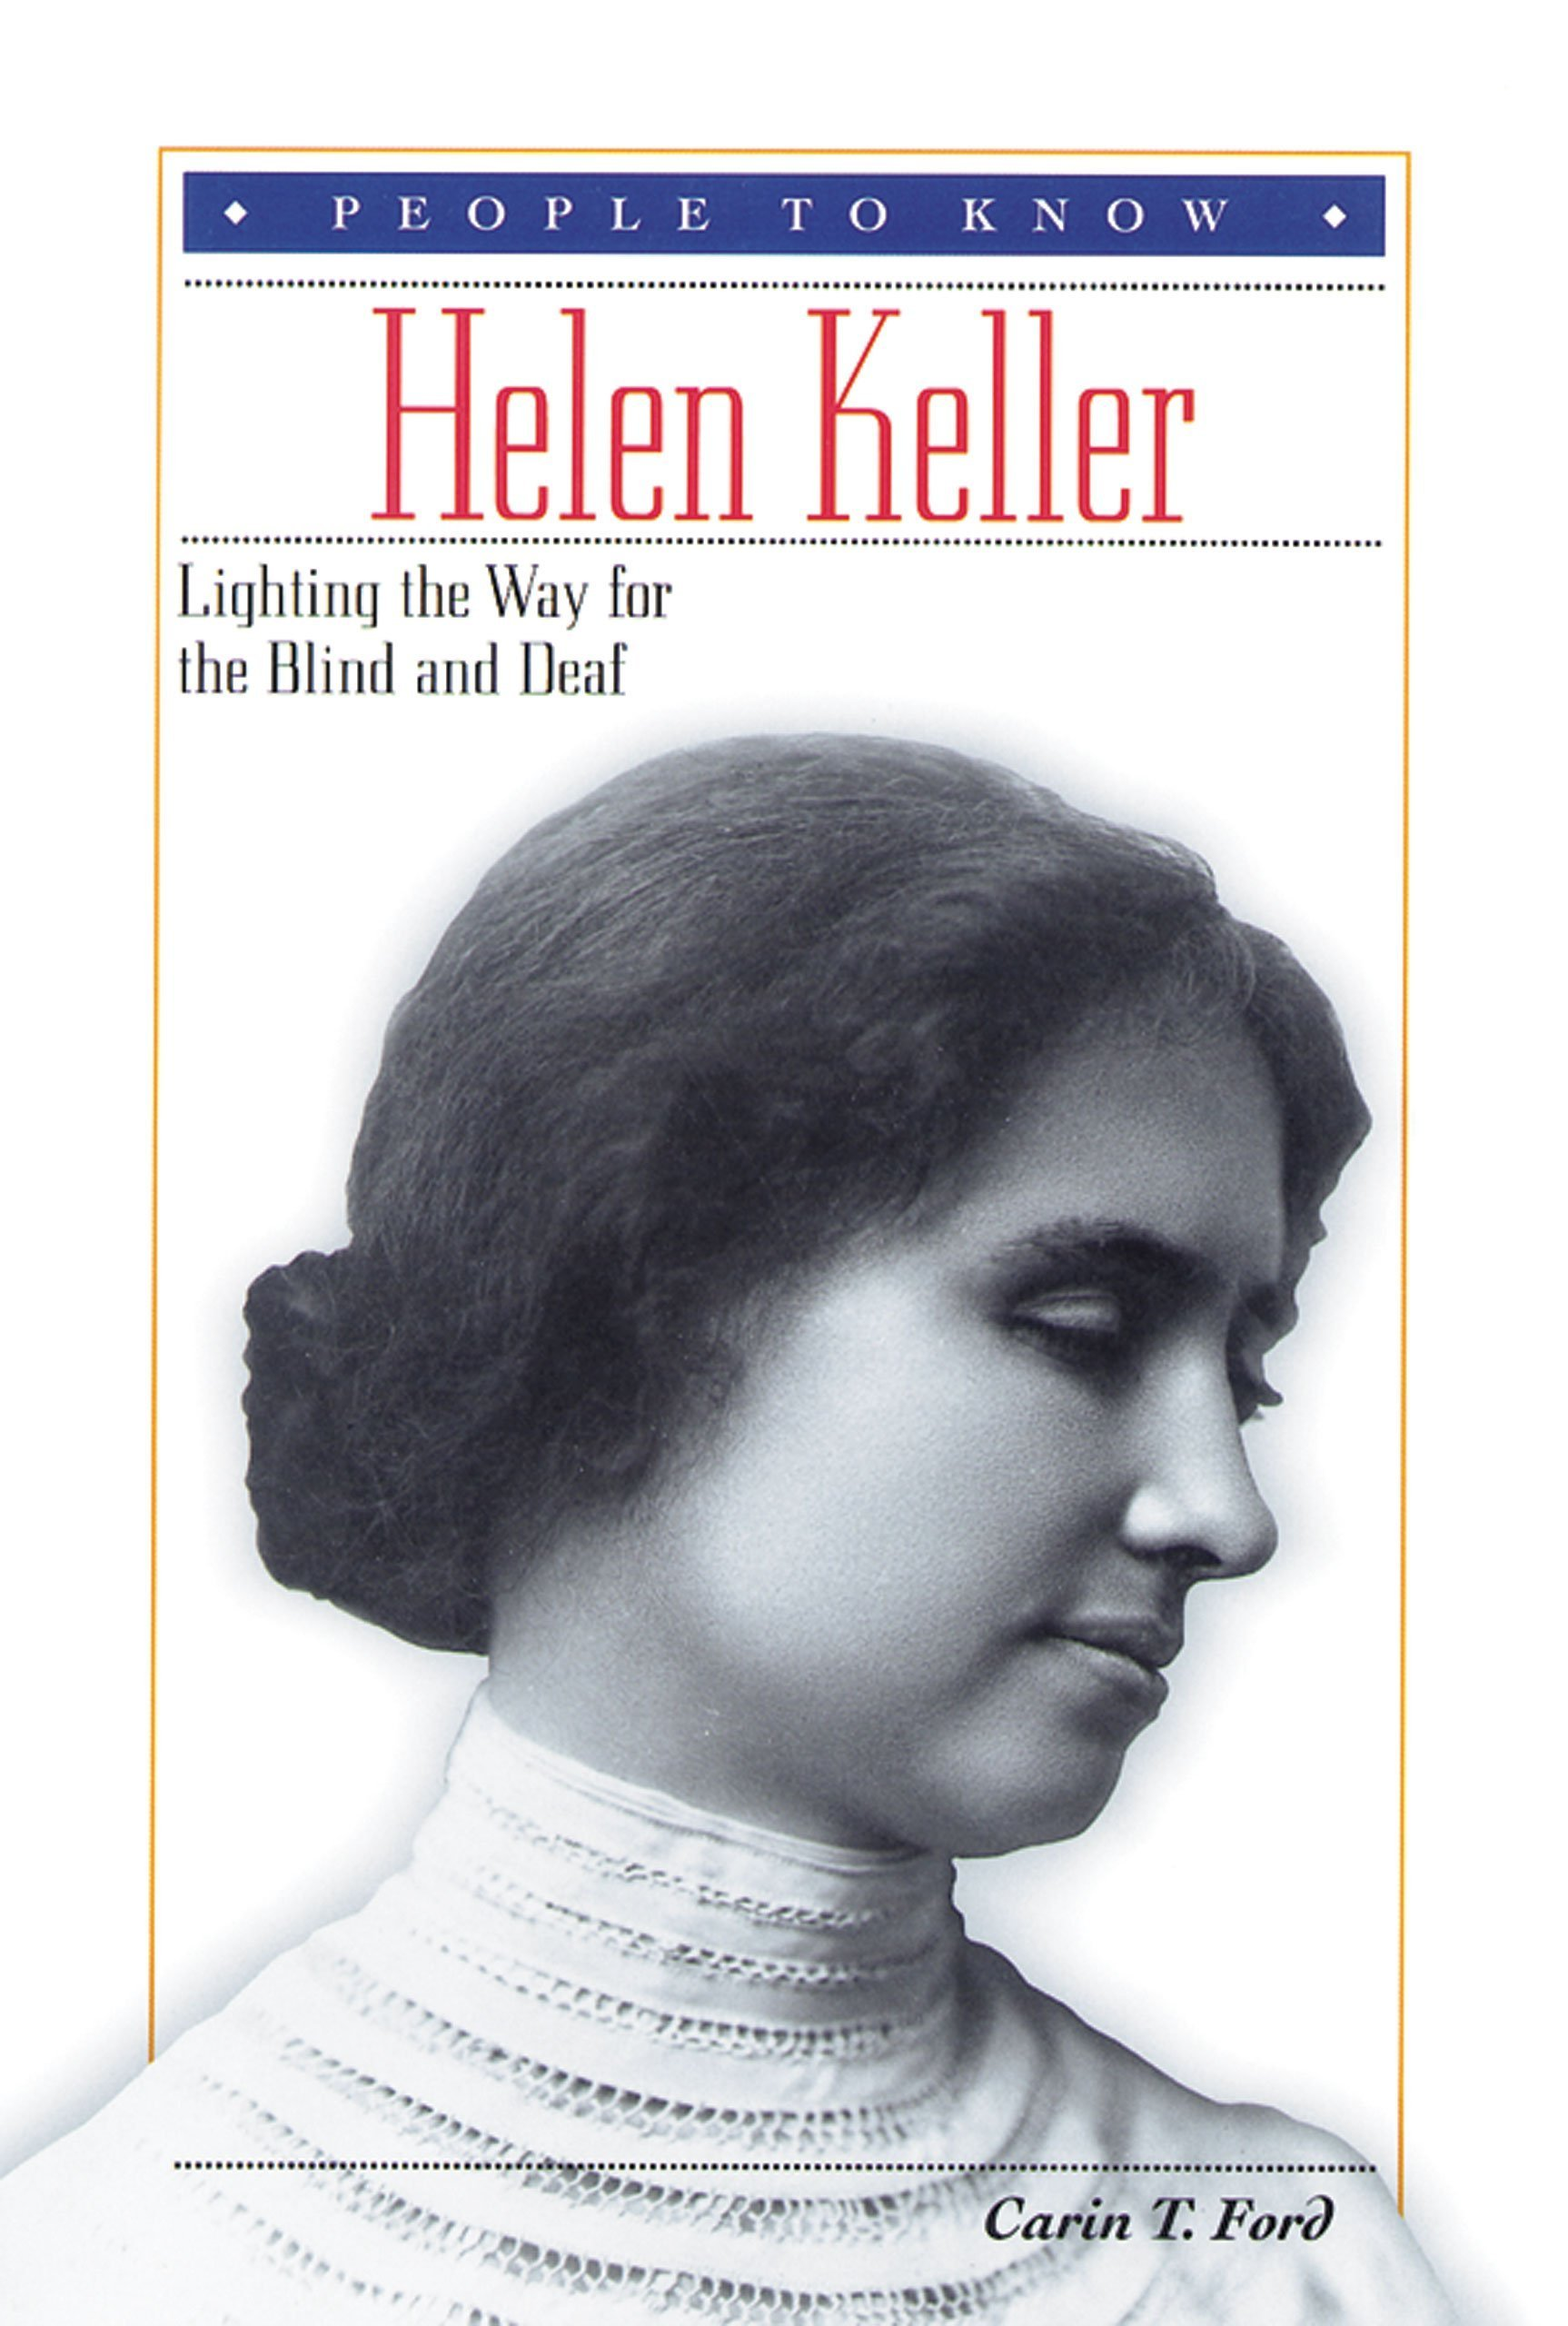 Helen keller lighting the way for the blind and deaf people to helen keller lighting the way for the blind and deaf people to know carin t ford 9780766015302 amazon books thecheapjerseys Choice Image